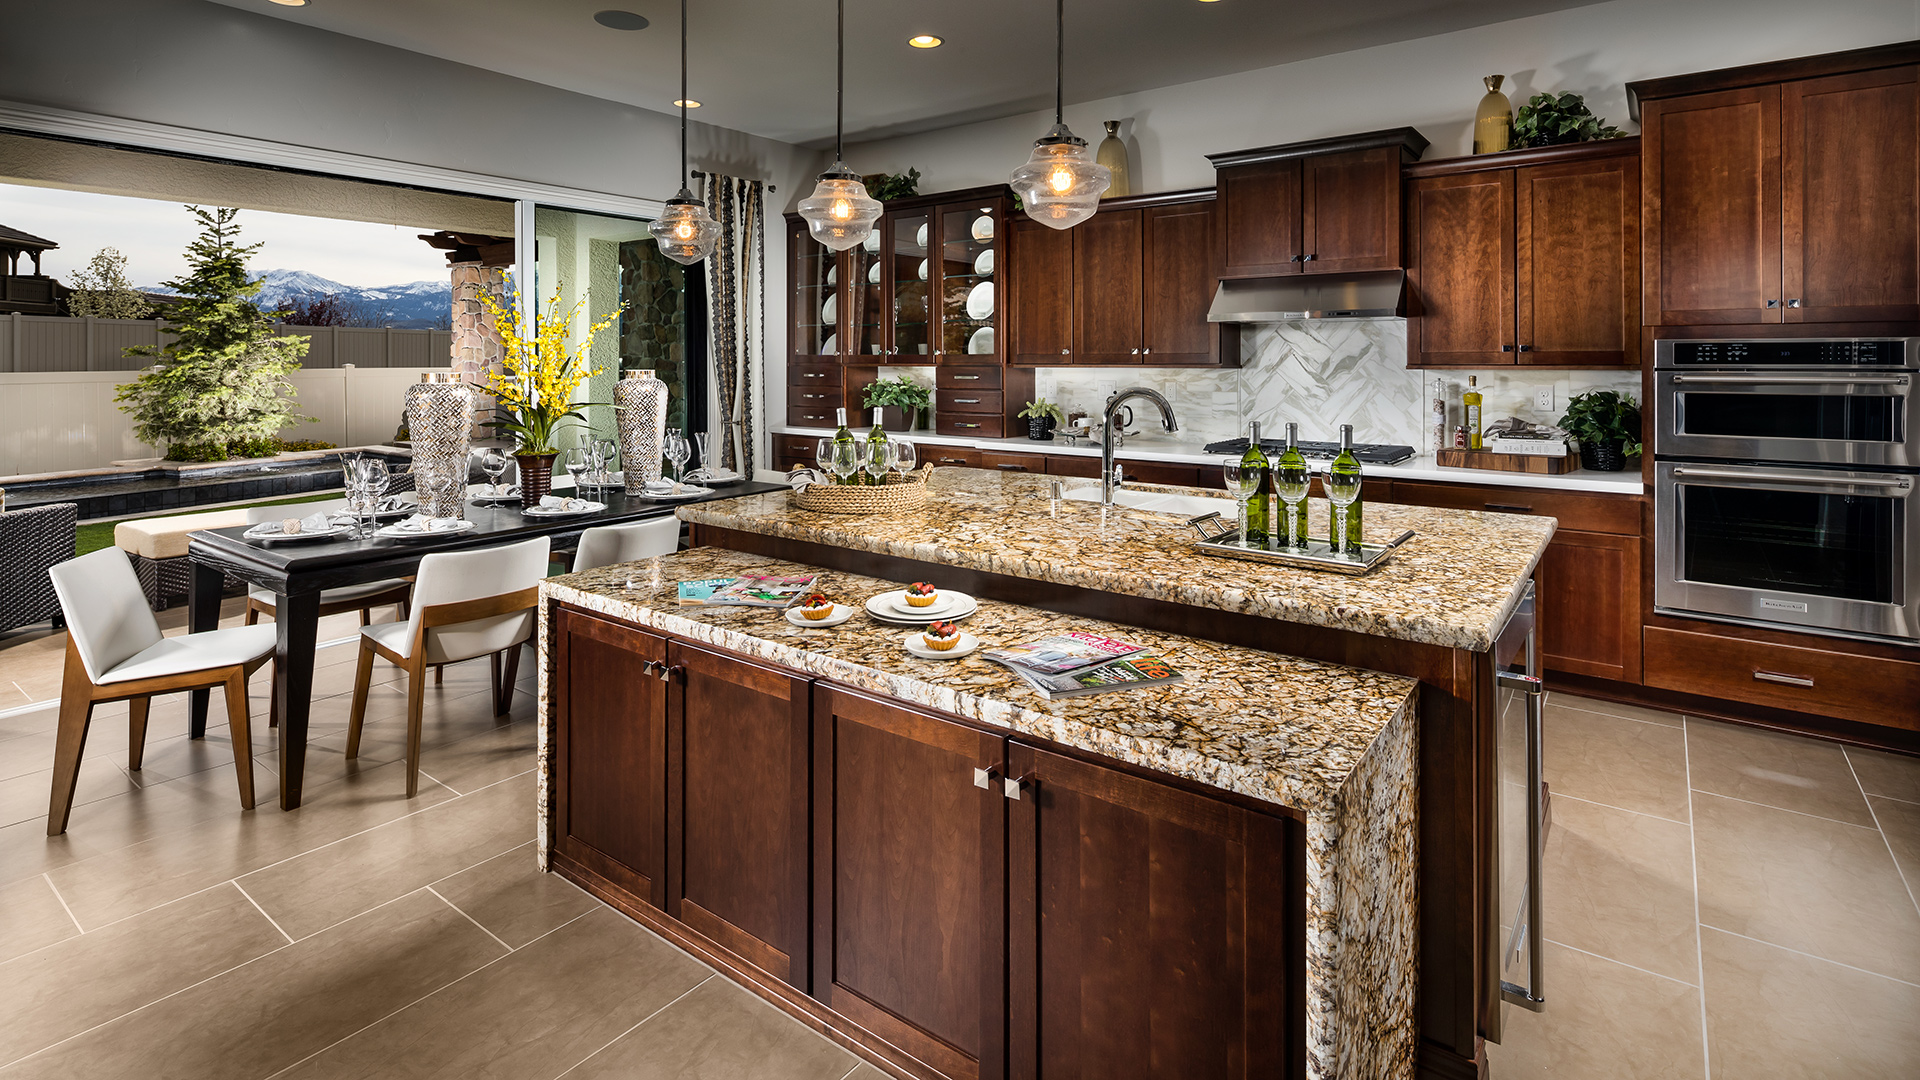 Reno Nv New Homes For Sale